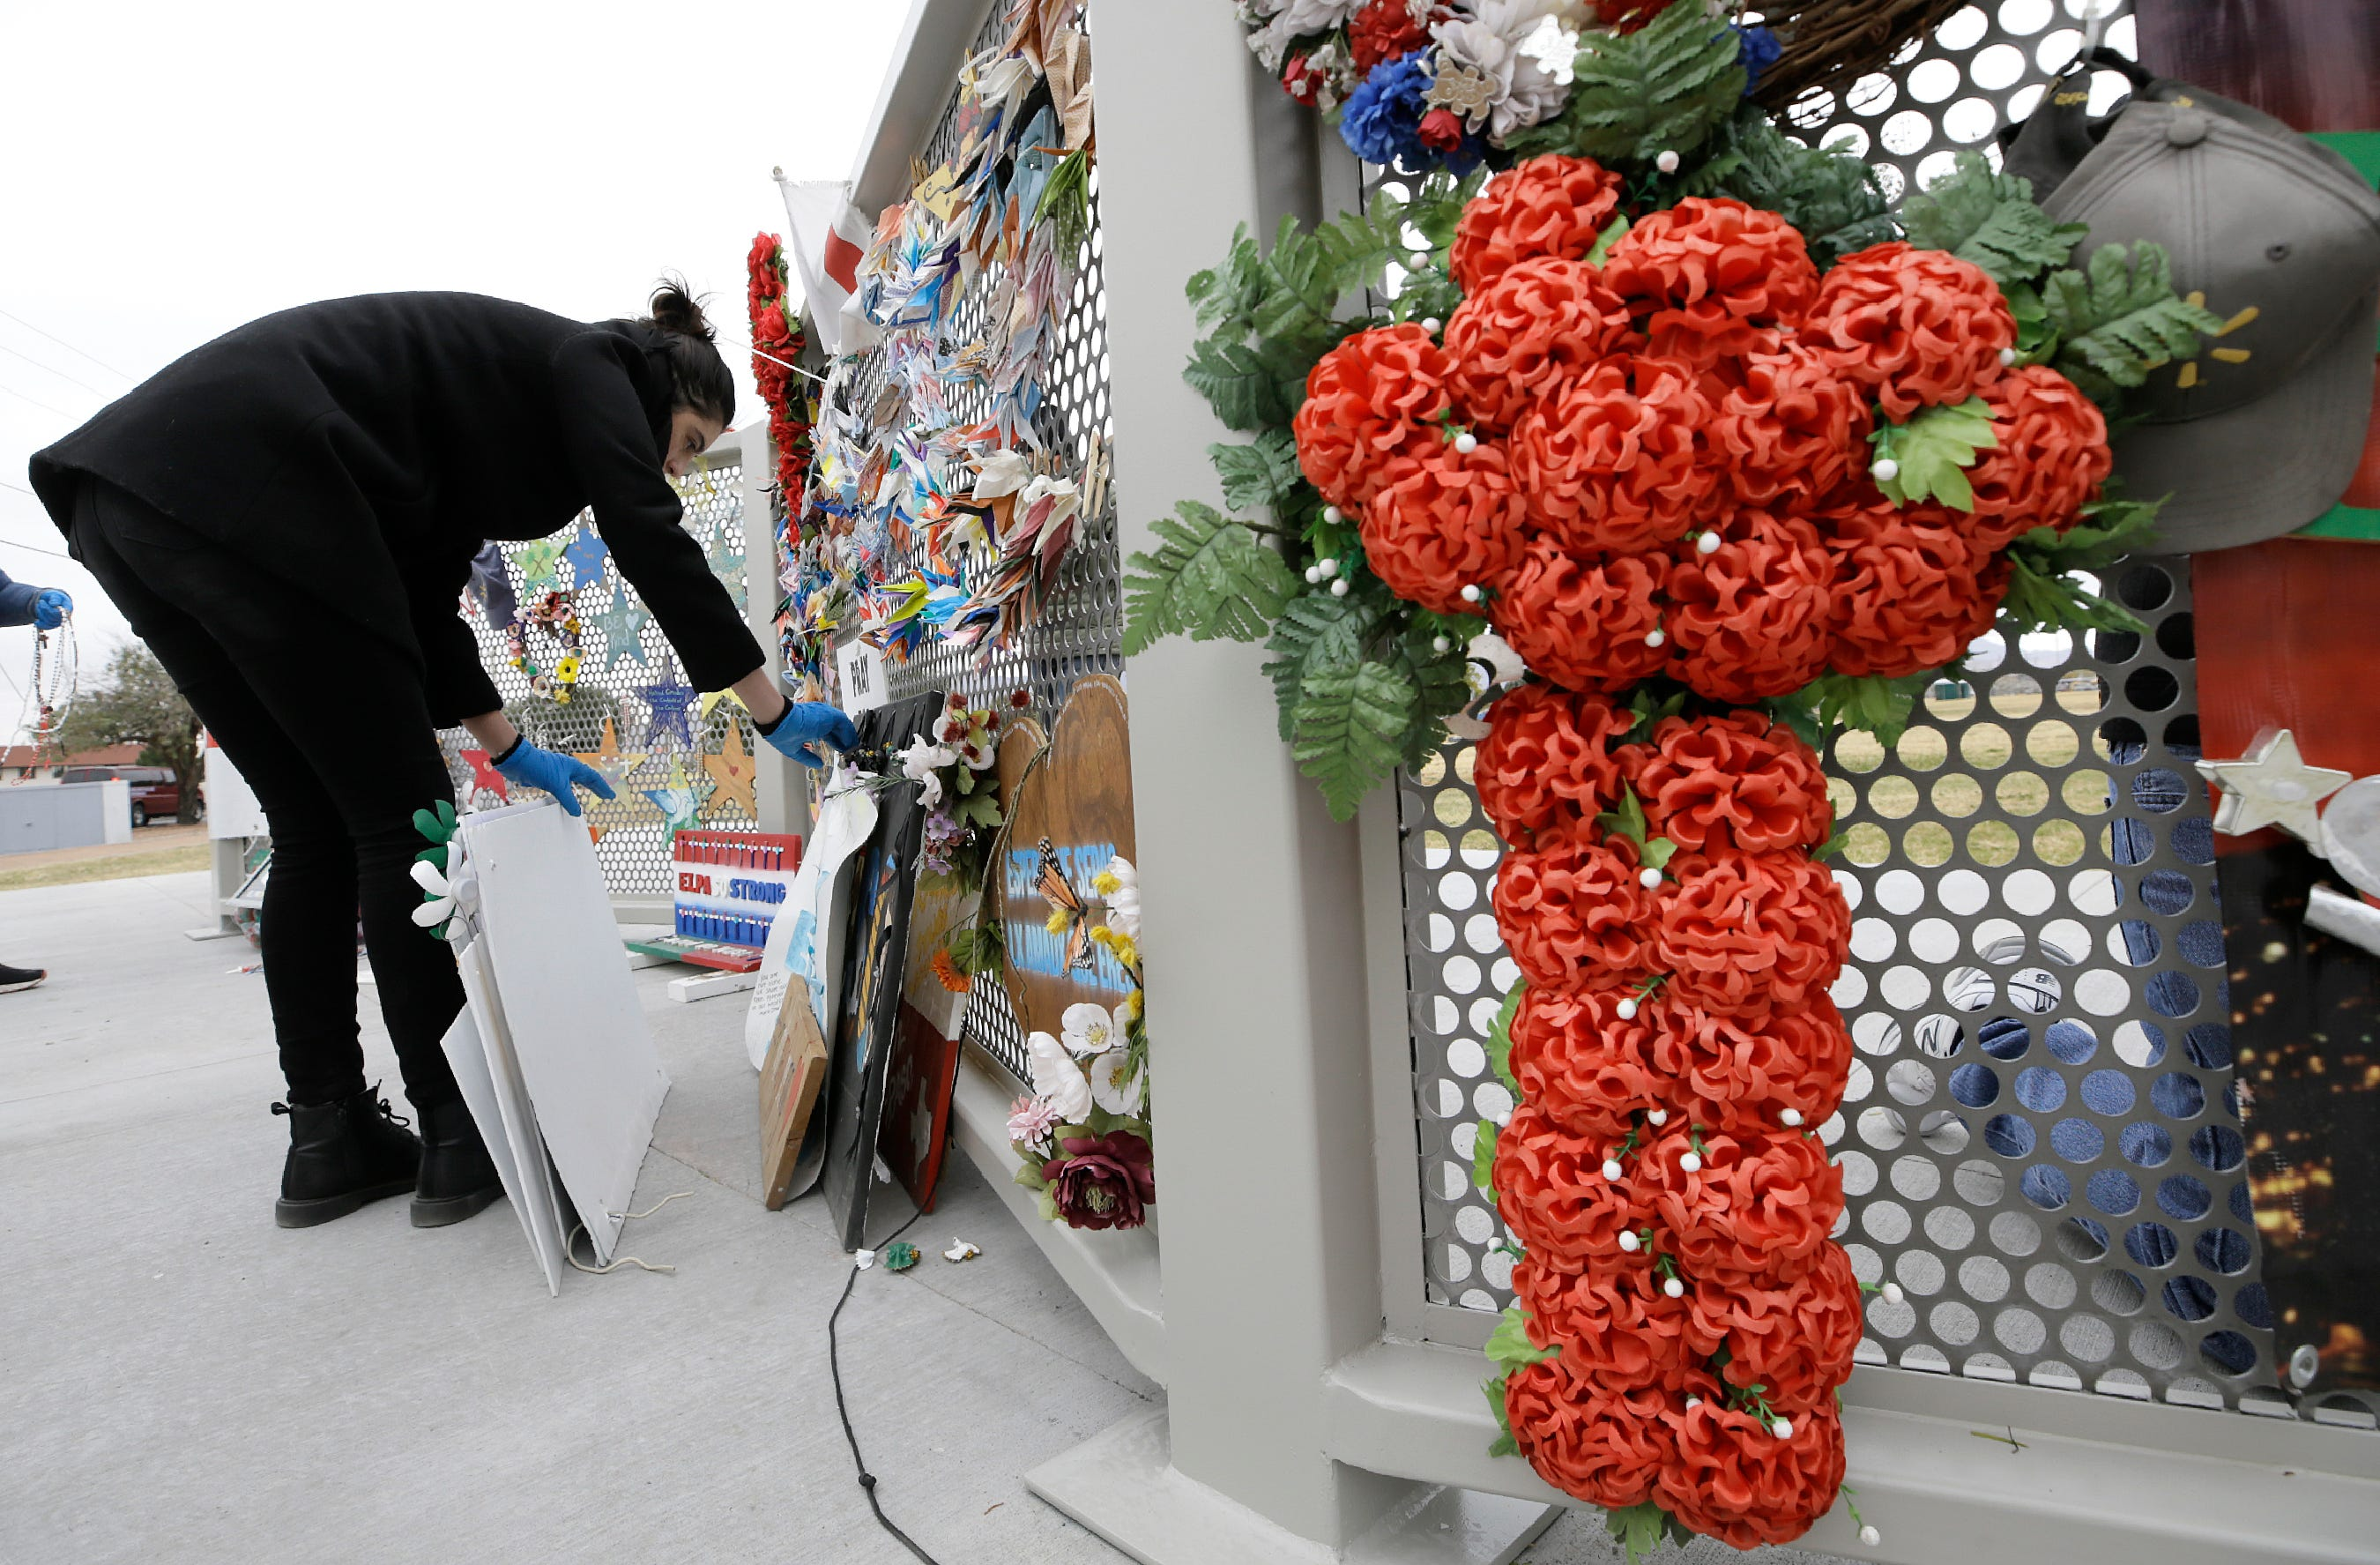 City removes mass shooting memorial before Walmart reopening